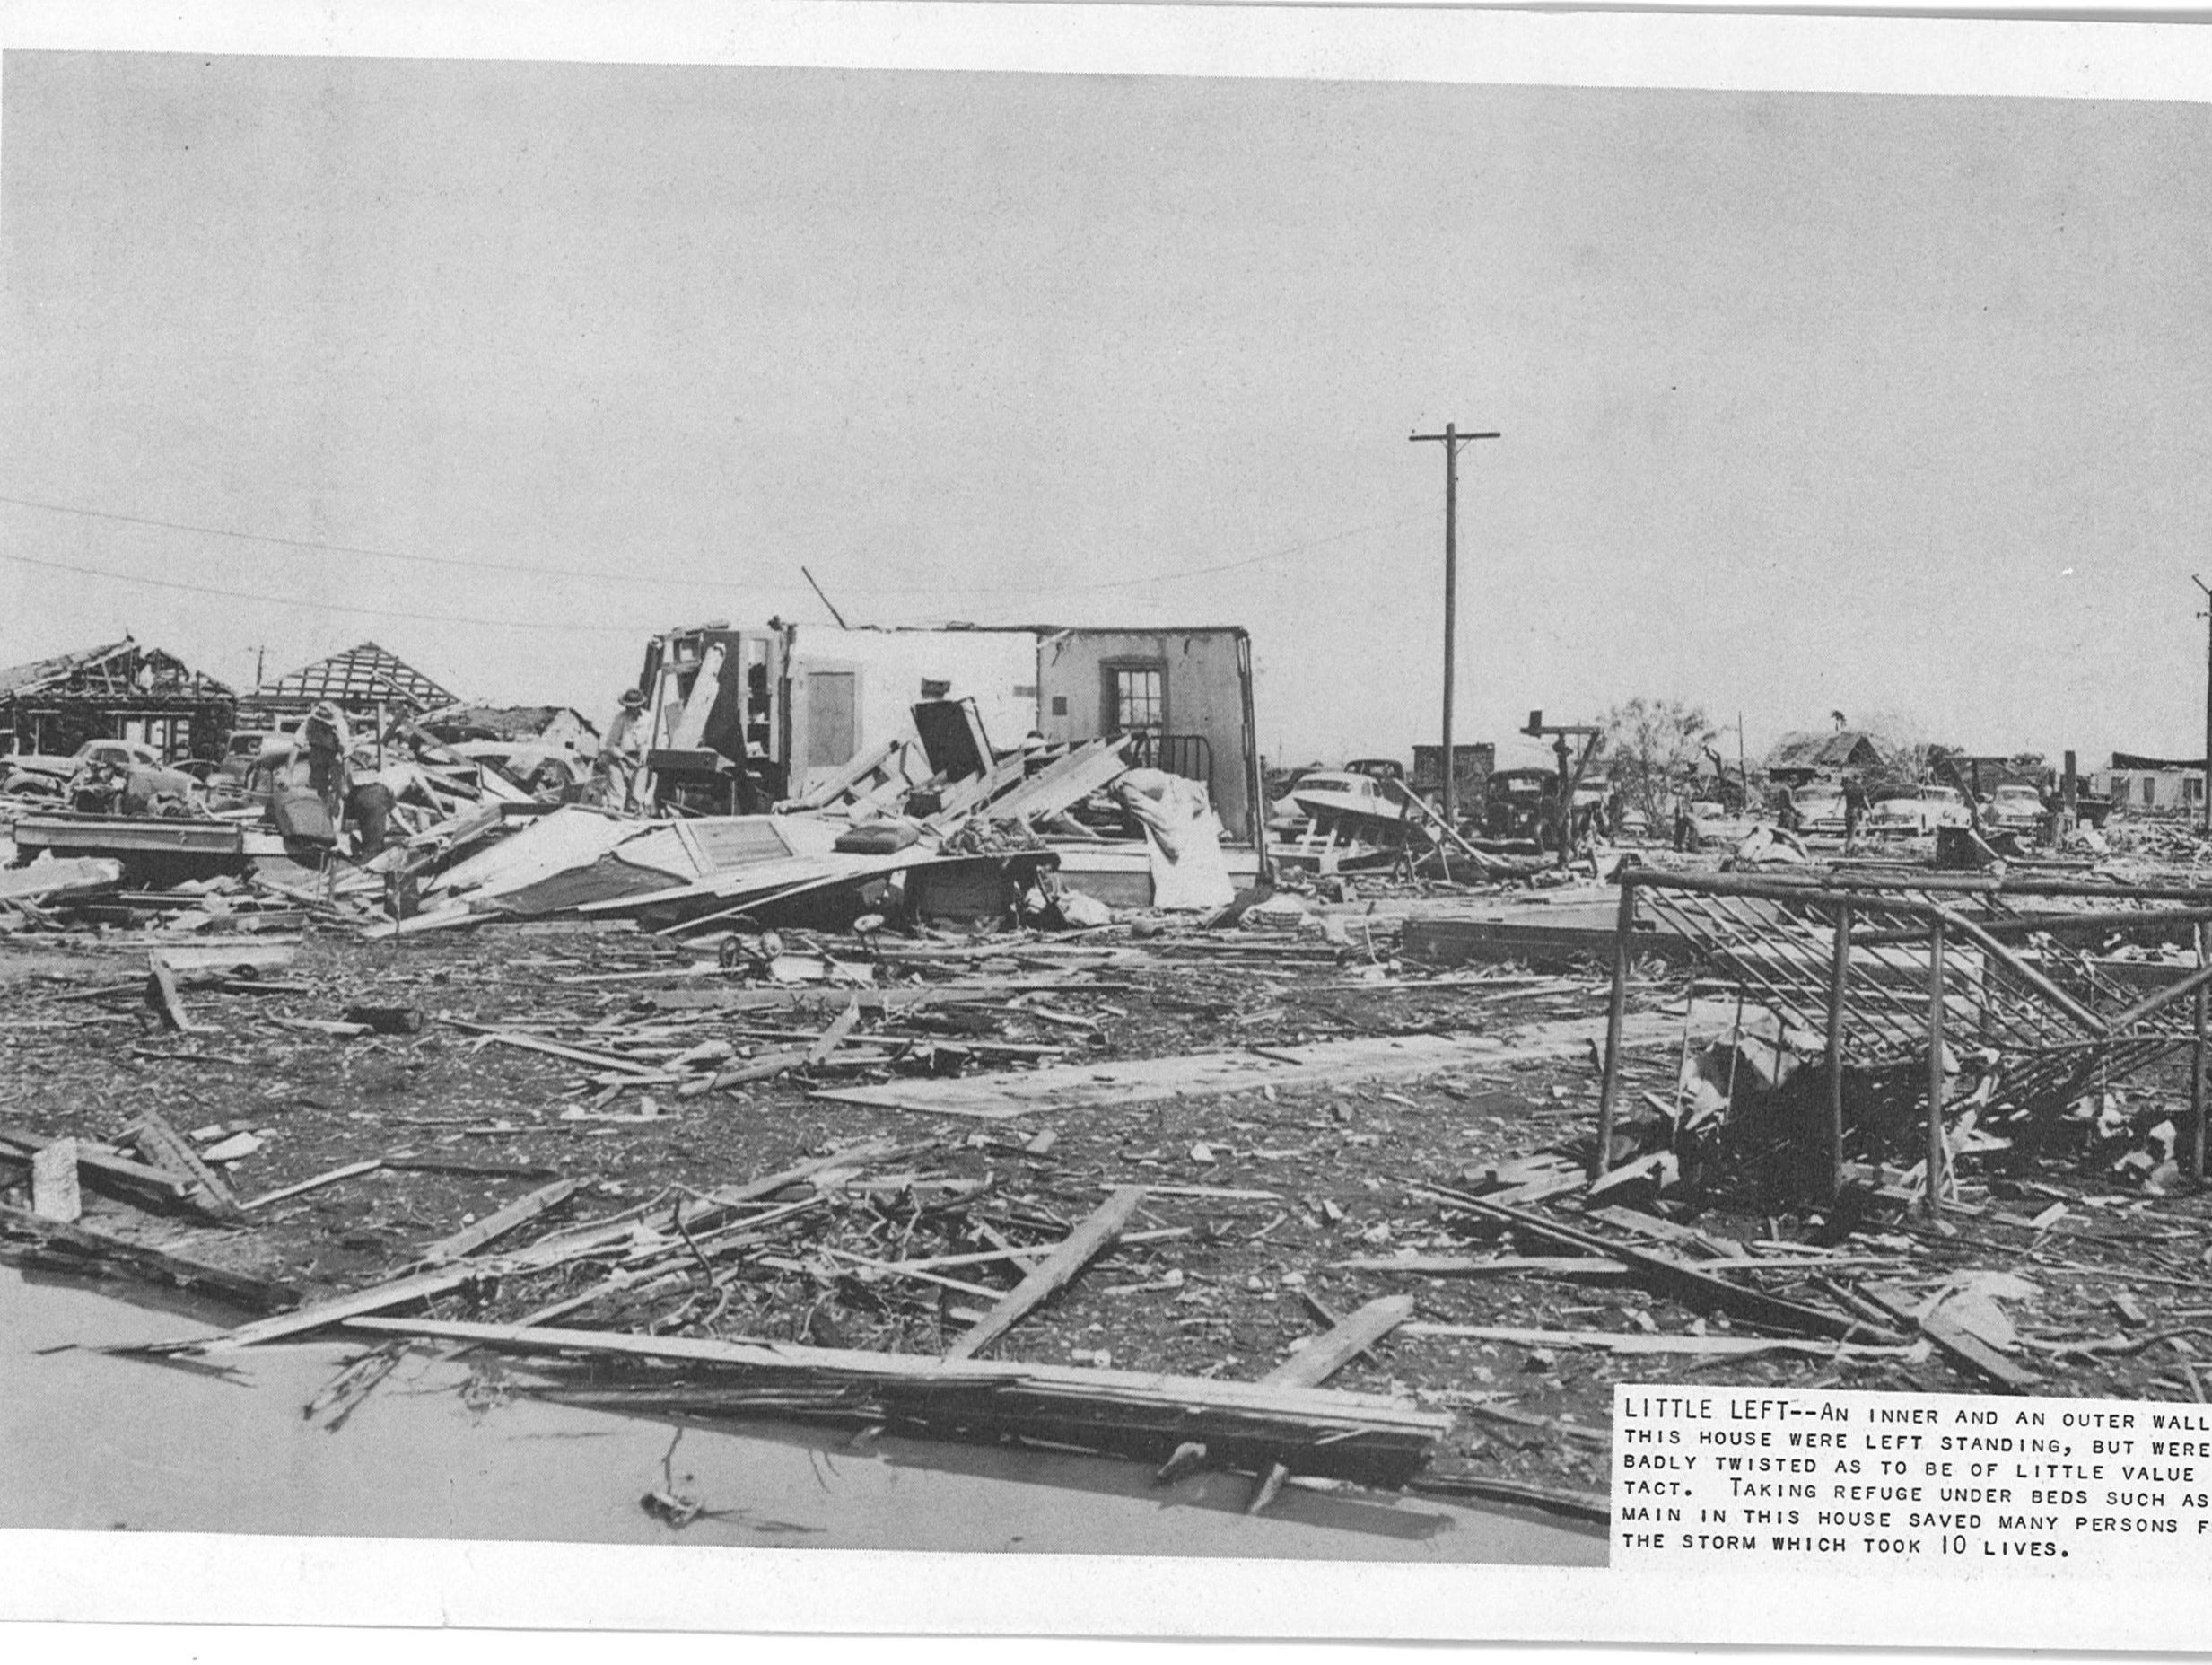 The Lake View tornado on May 11, 1953, decimated many homes like this one on May 11, 1953. The original cut-line reads: An inner and an outer wall of this house were left standing, but were so badly twisted as to be of little value intact. Taking refuge under beds such as remain in this house saved many persons from the storm with took 10 lives. The tornado killed 18 people.